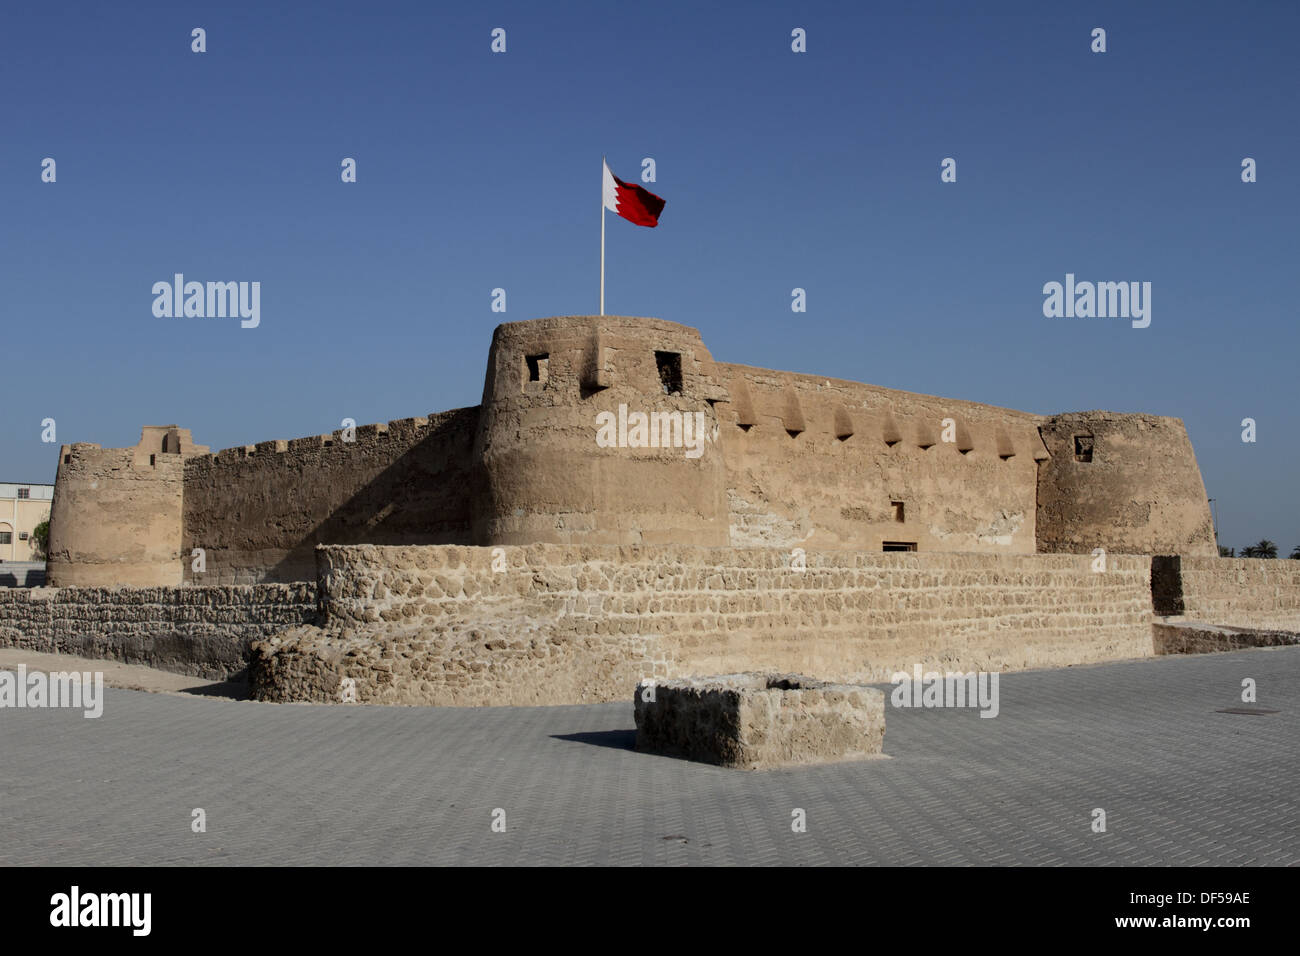 Arad Fort in Muharraq, Kingdom of Bahrain, with the Bahrain flag flying - Stock Image